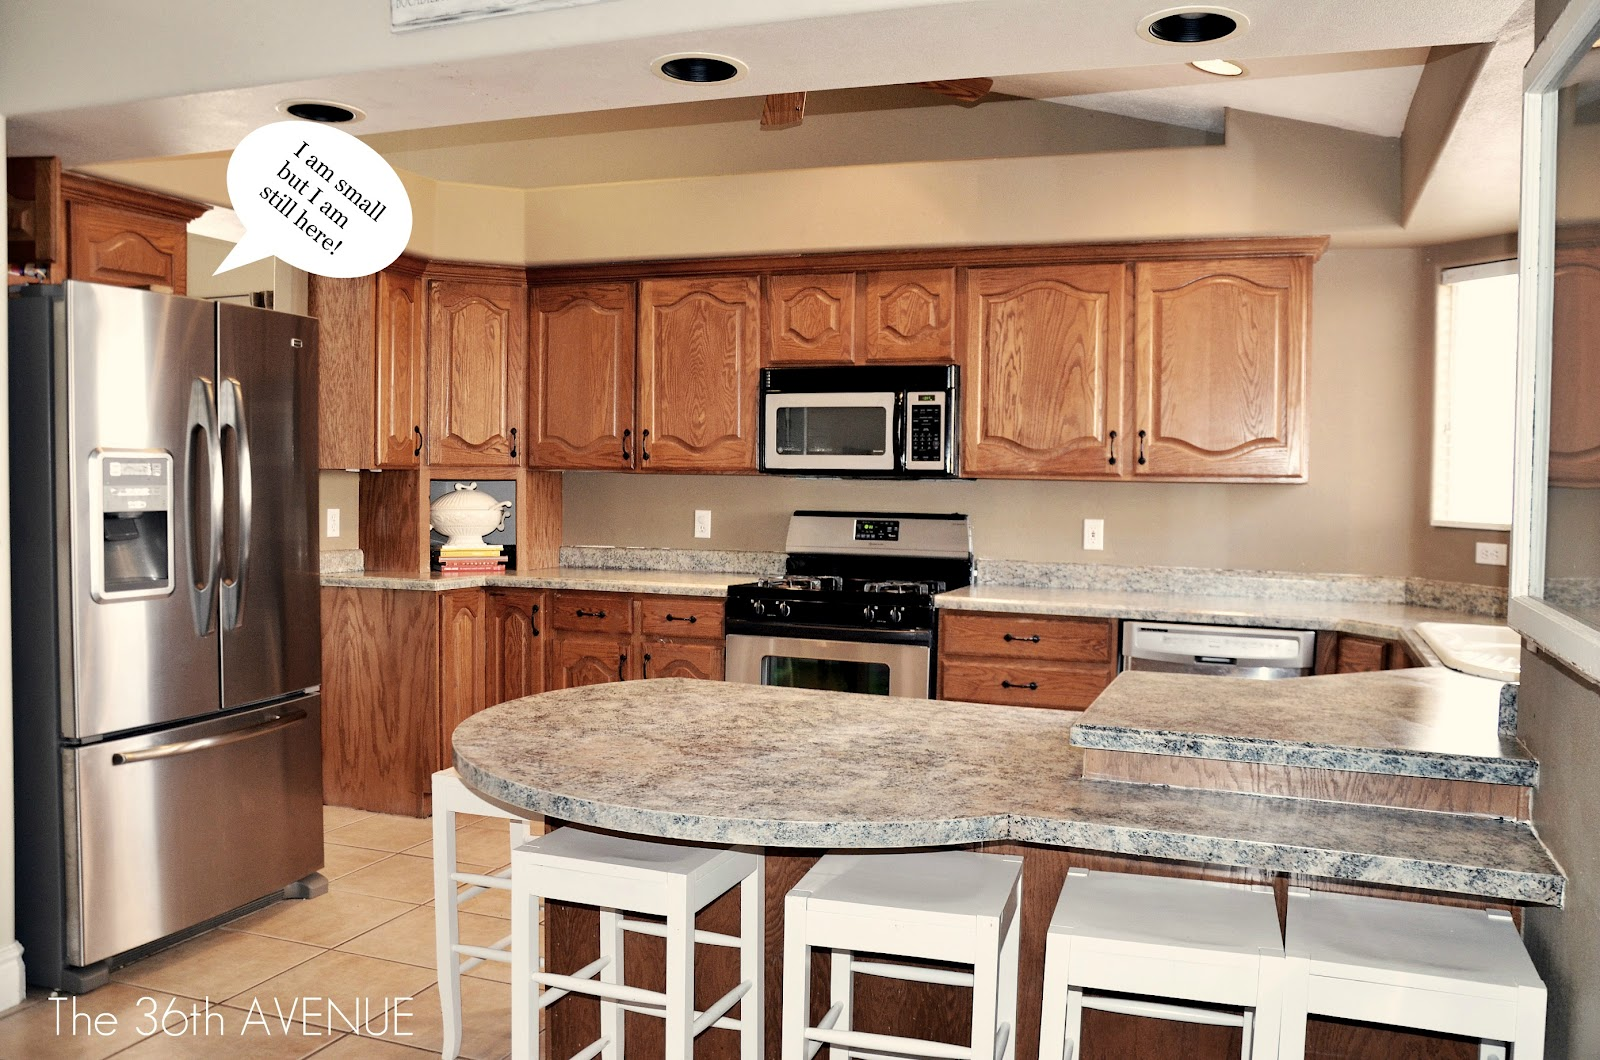 Kitchen Accent Cabinet Tutorial and Party! - The 36th AVENUE